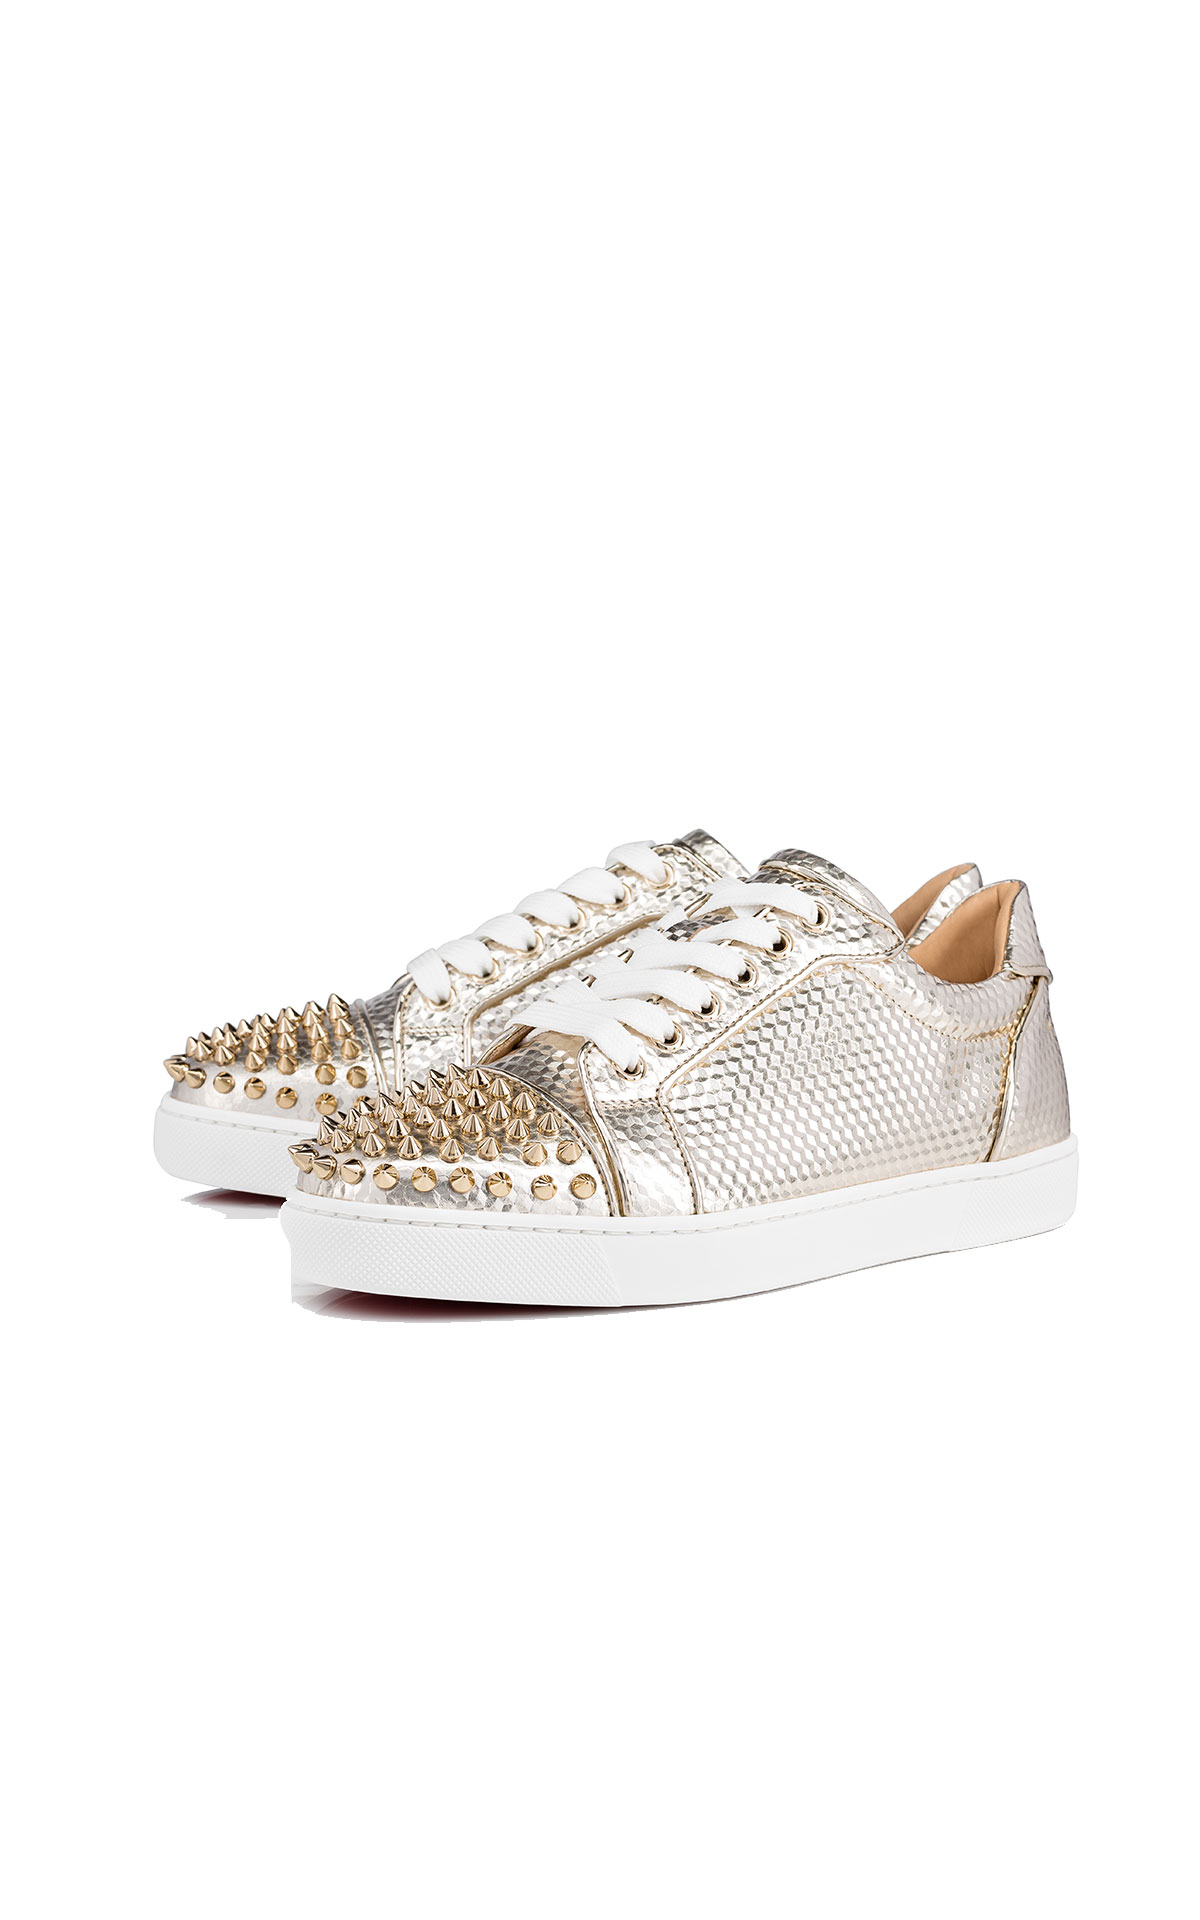 Christian Louboutin Vieira spikes orlato from Bicester Village